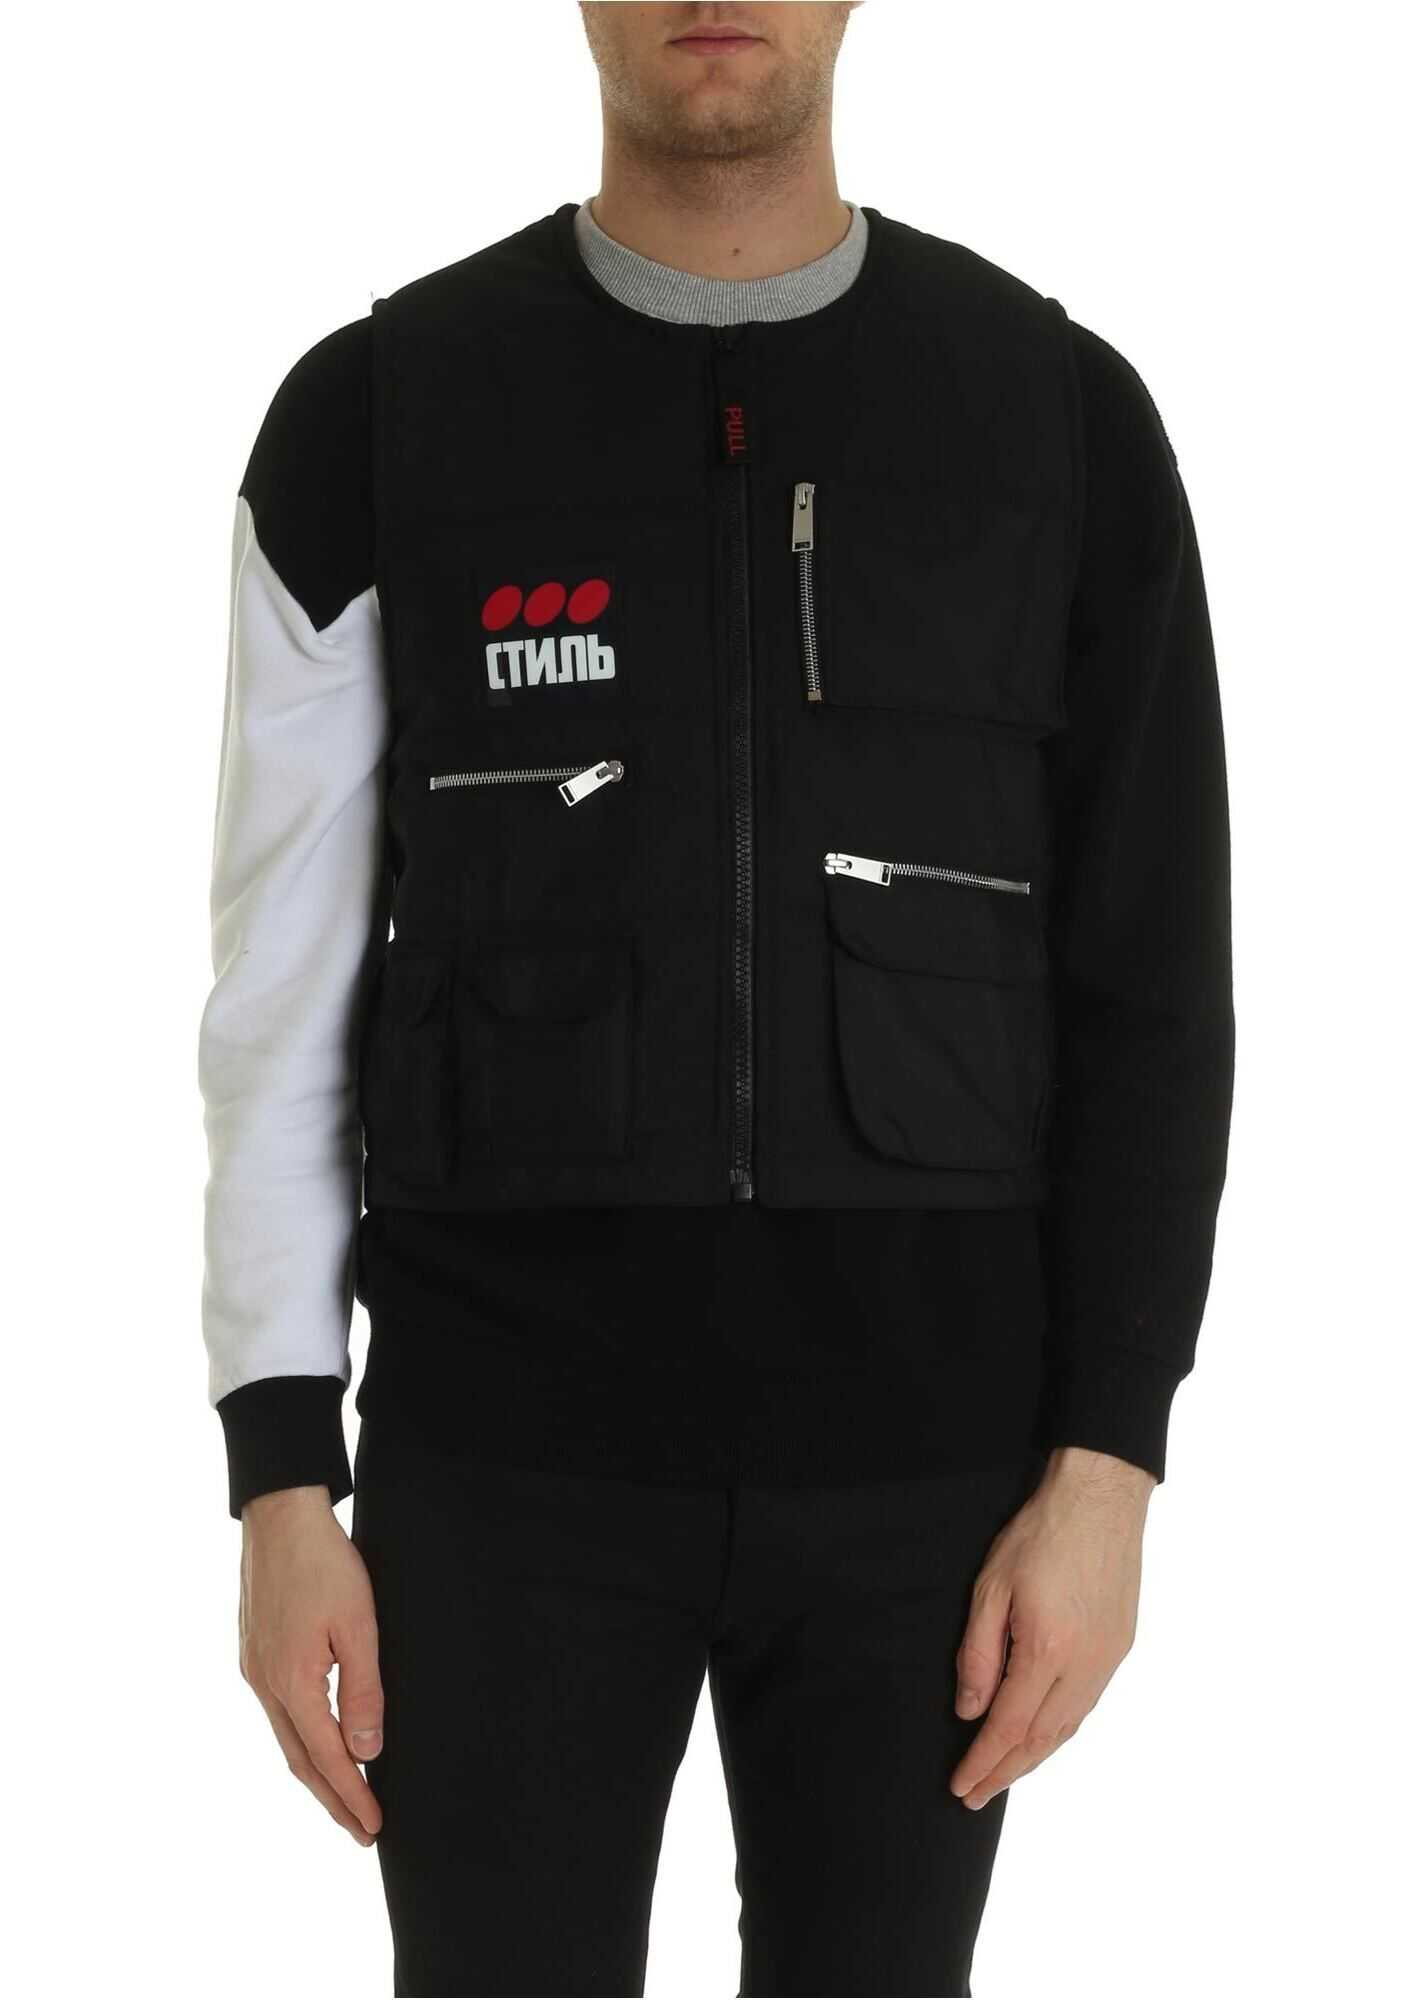 Heron Preston Multipockets Vest Fire Vest In Black Black imagine